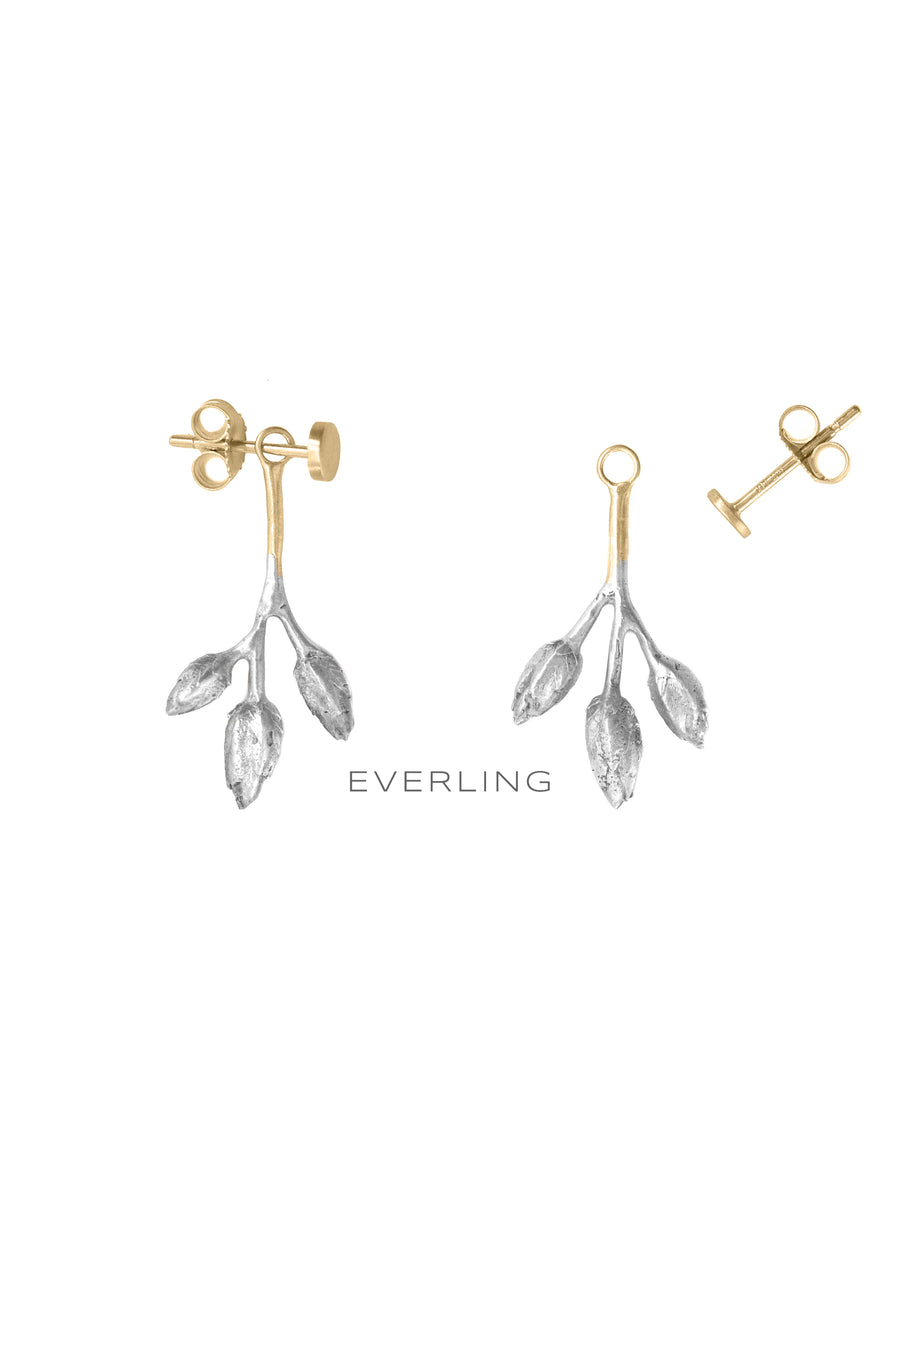 Detail- Recycled 14K Yellow Gold and Sterling Silver Three-pod Earring Jackets and Stud Earrings. #organicjewelry #designerjewelry www.everlingjewelry.com